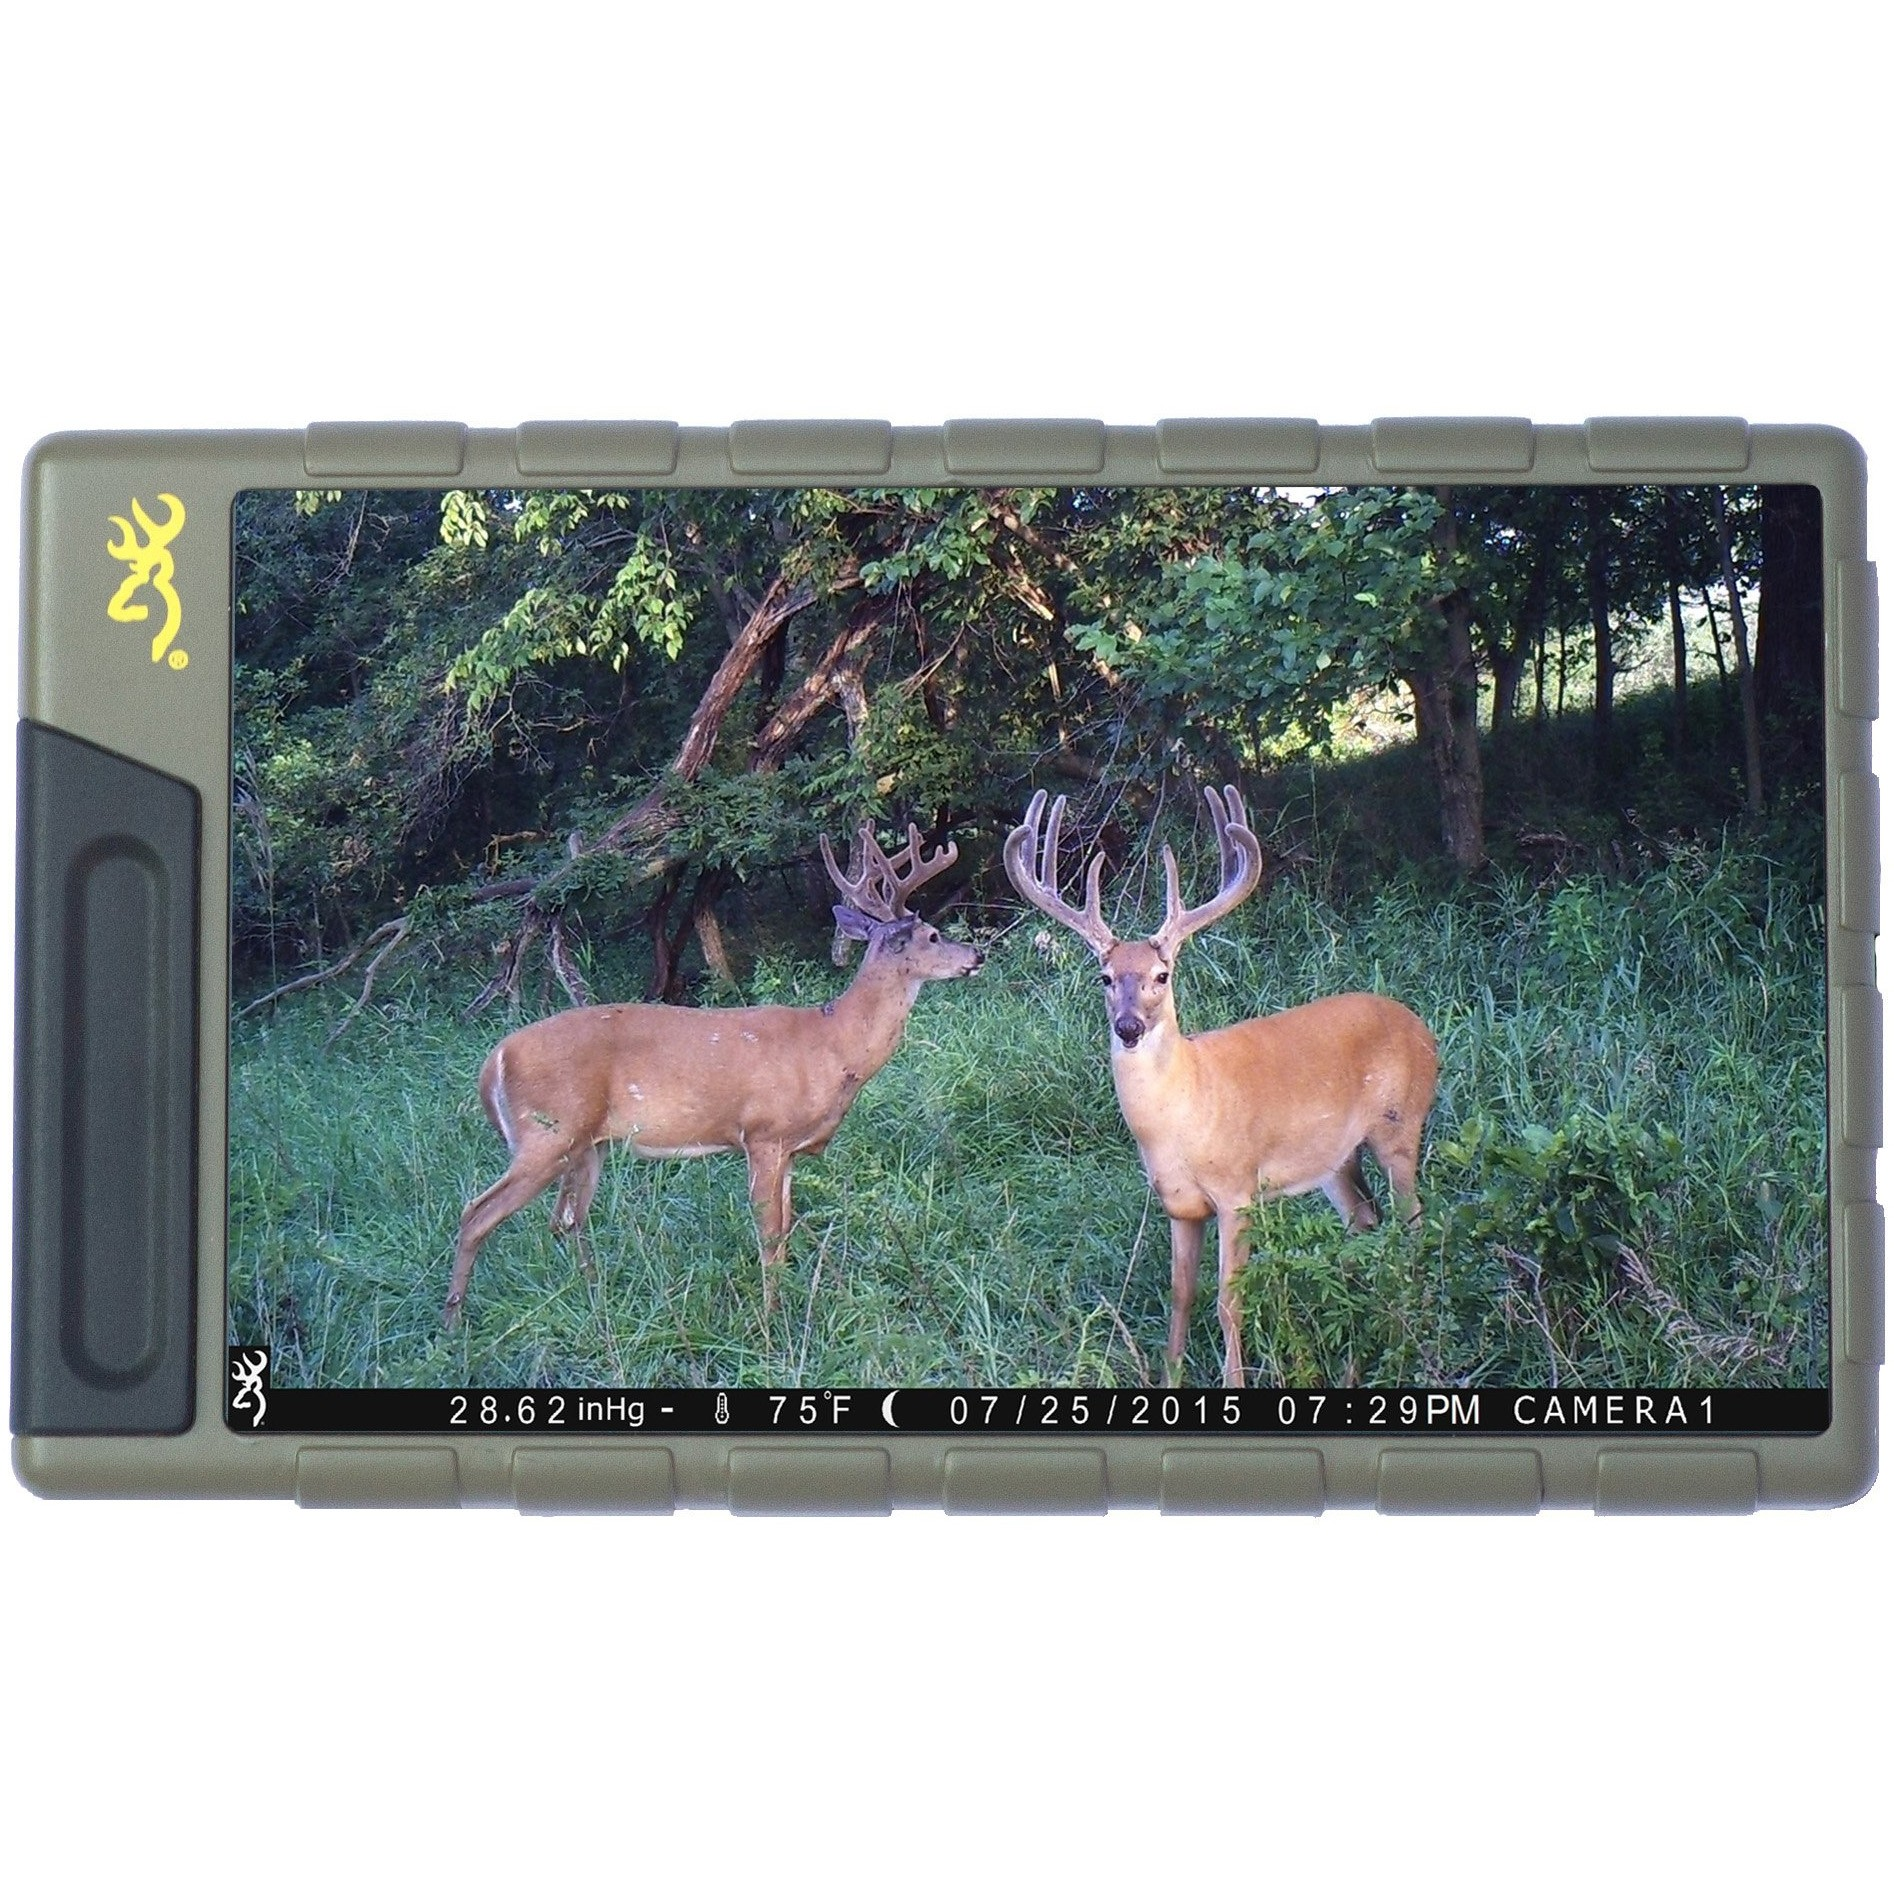 Browning Picture And Video Viewer